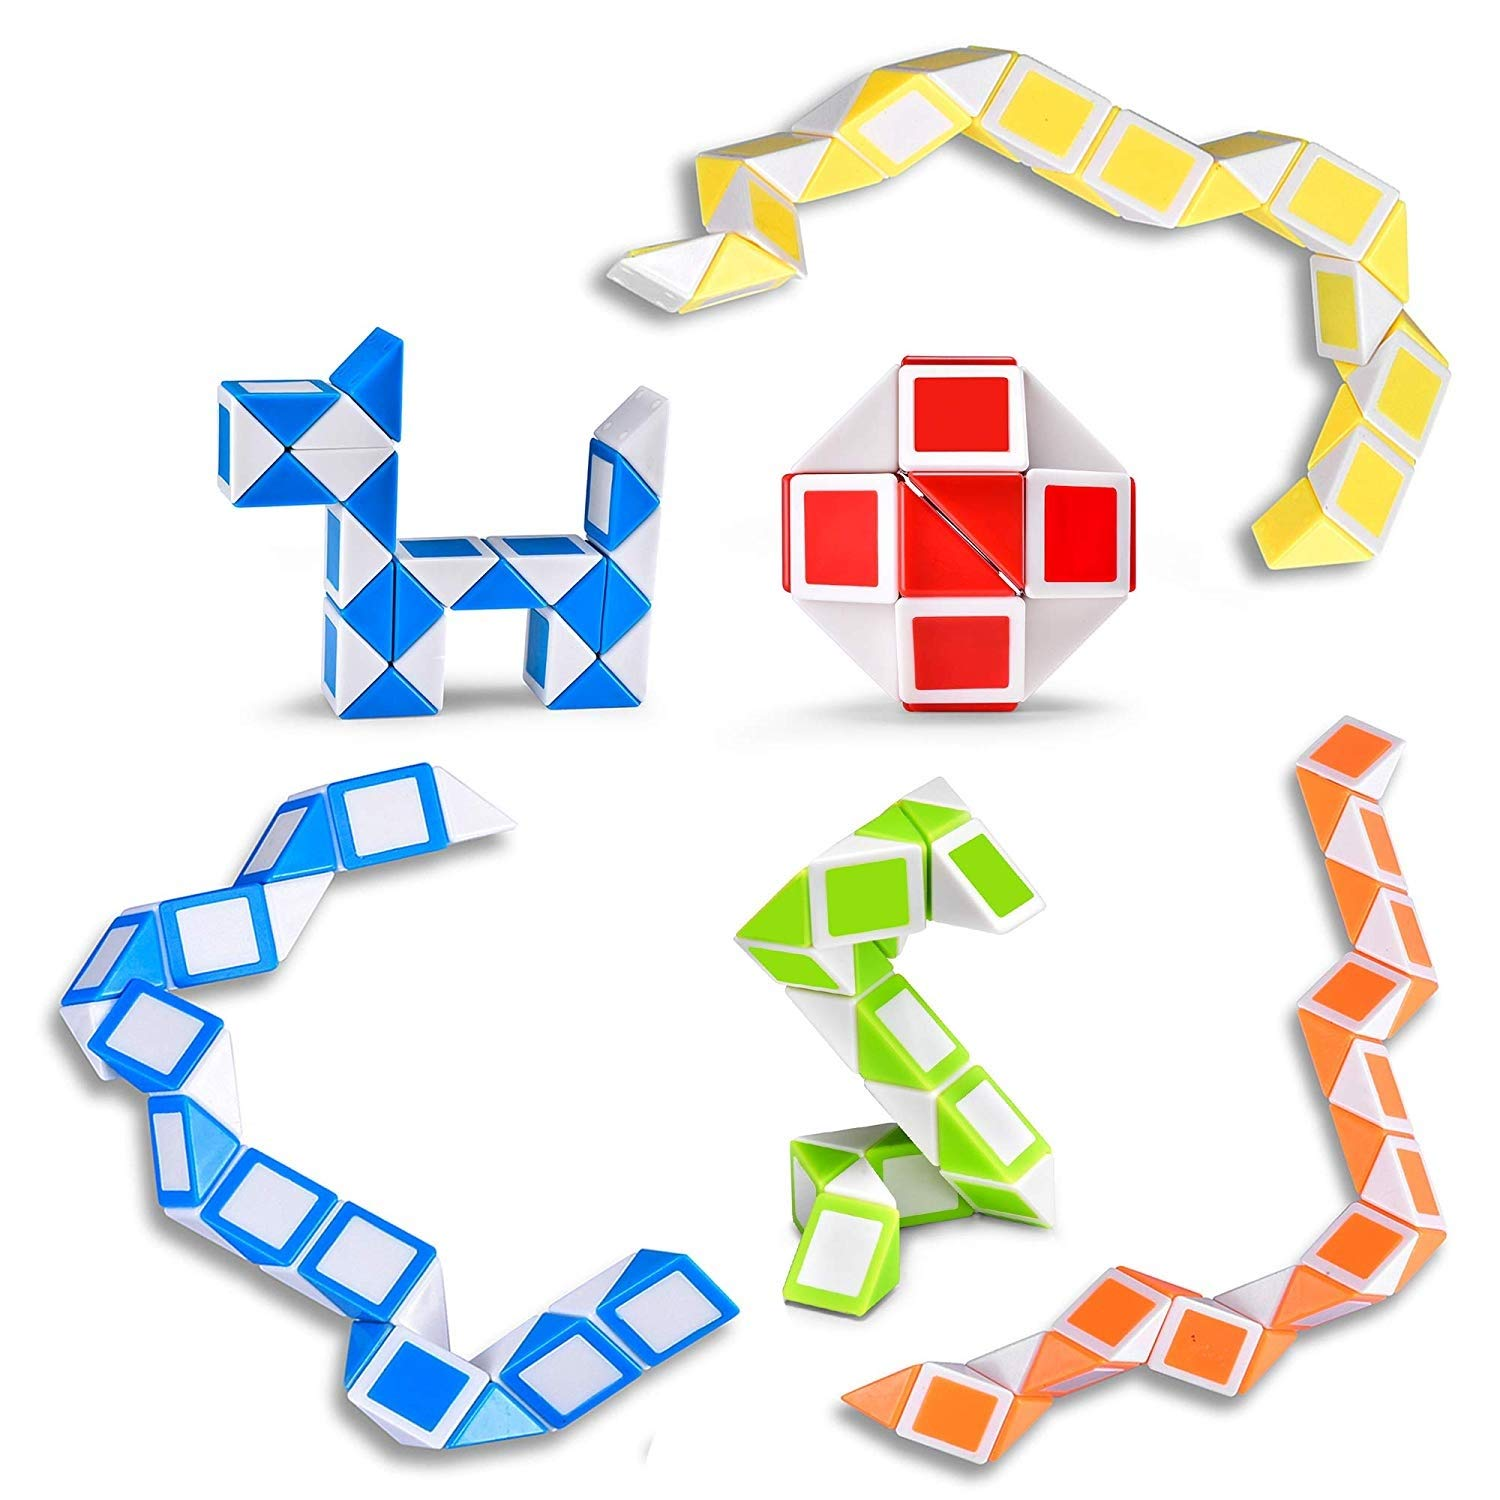 ecb443427c902 Ganowo Magic Snake Cube Mini 6 Pack-24 Blocks Twist Puzzle Collection Brain  Teaser Toy Snake Ruler Fidget Toys Sets for Kids Party Bag Fillers Game ...